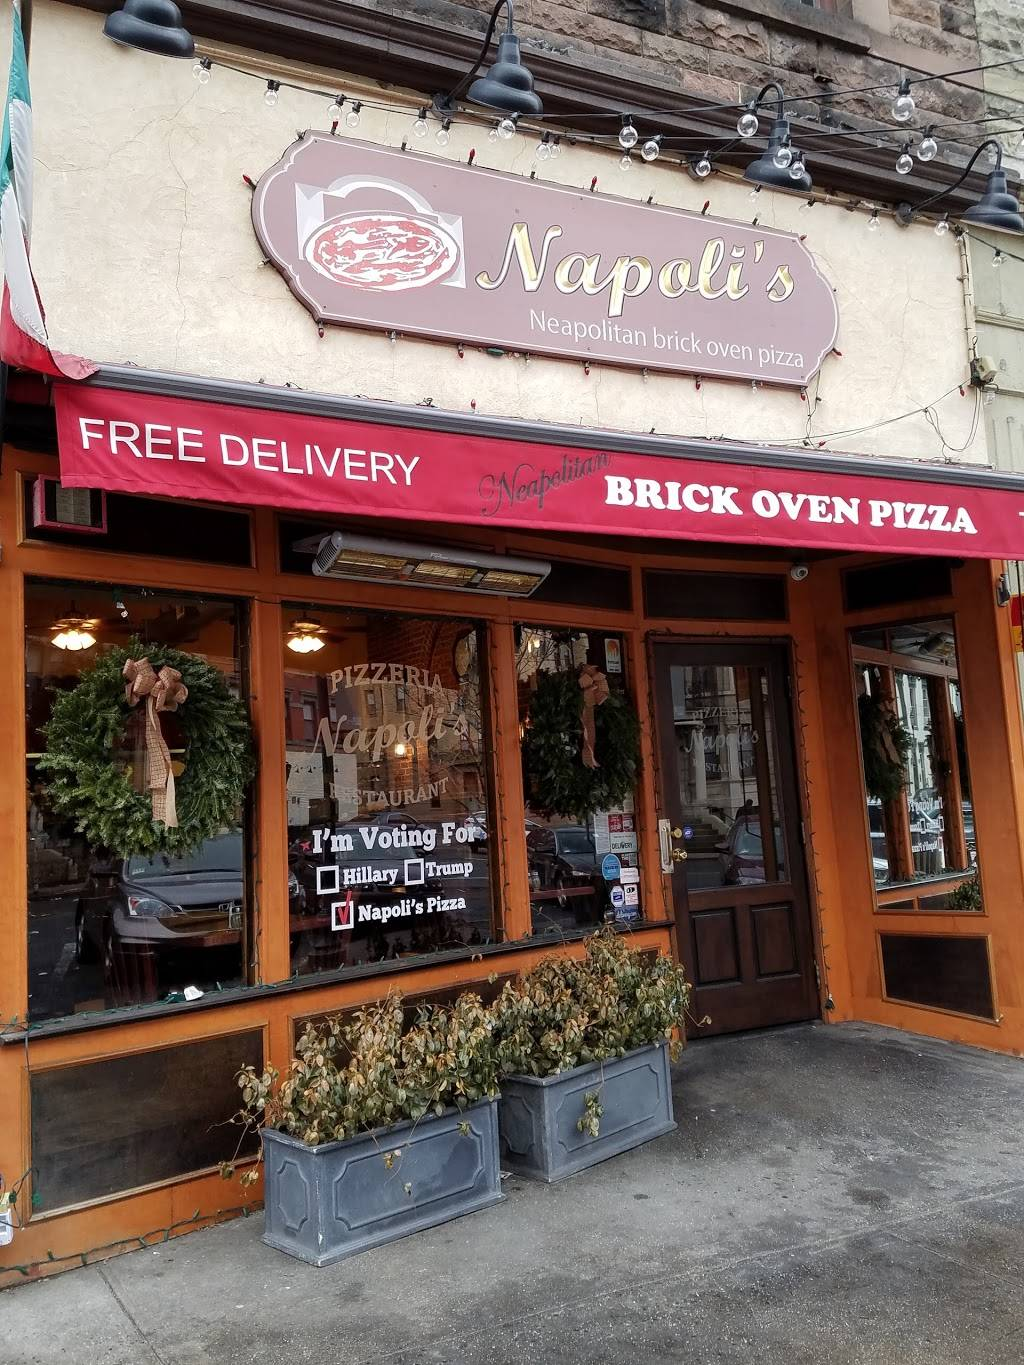 Napolis Pizza | restaurant | 1118 Washington St, Hoboken, NJ 07030, USA | 2012160900 OR +1 201-216-0900